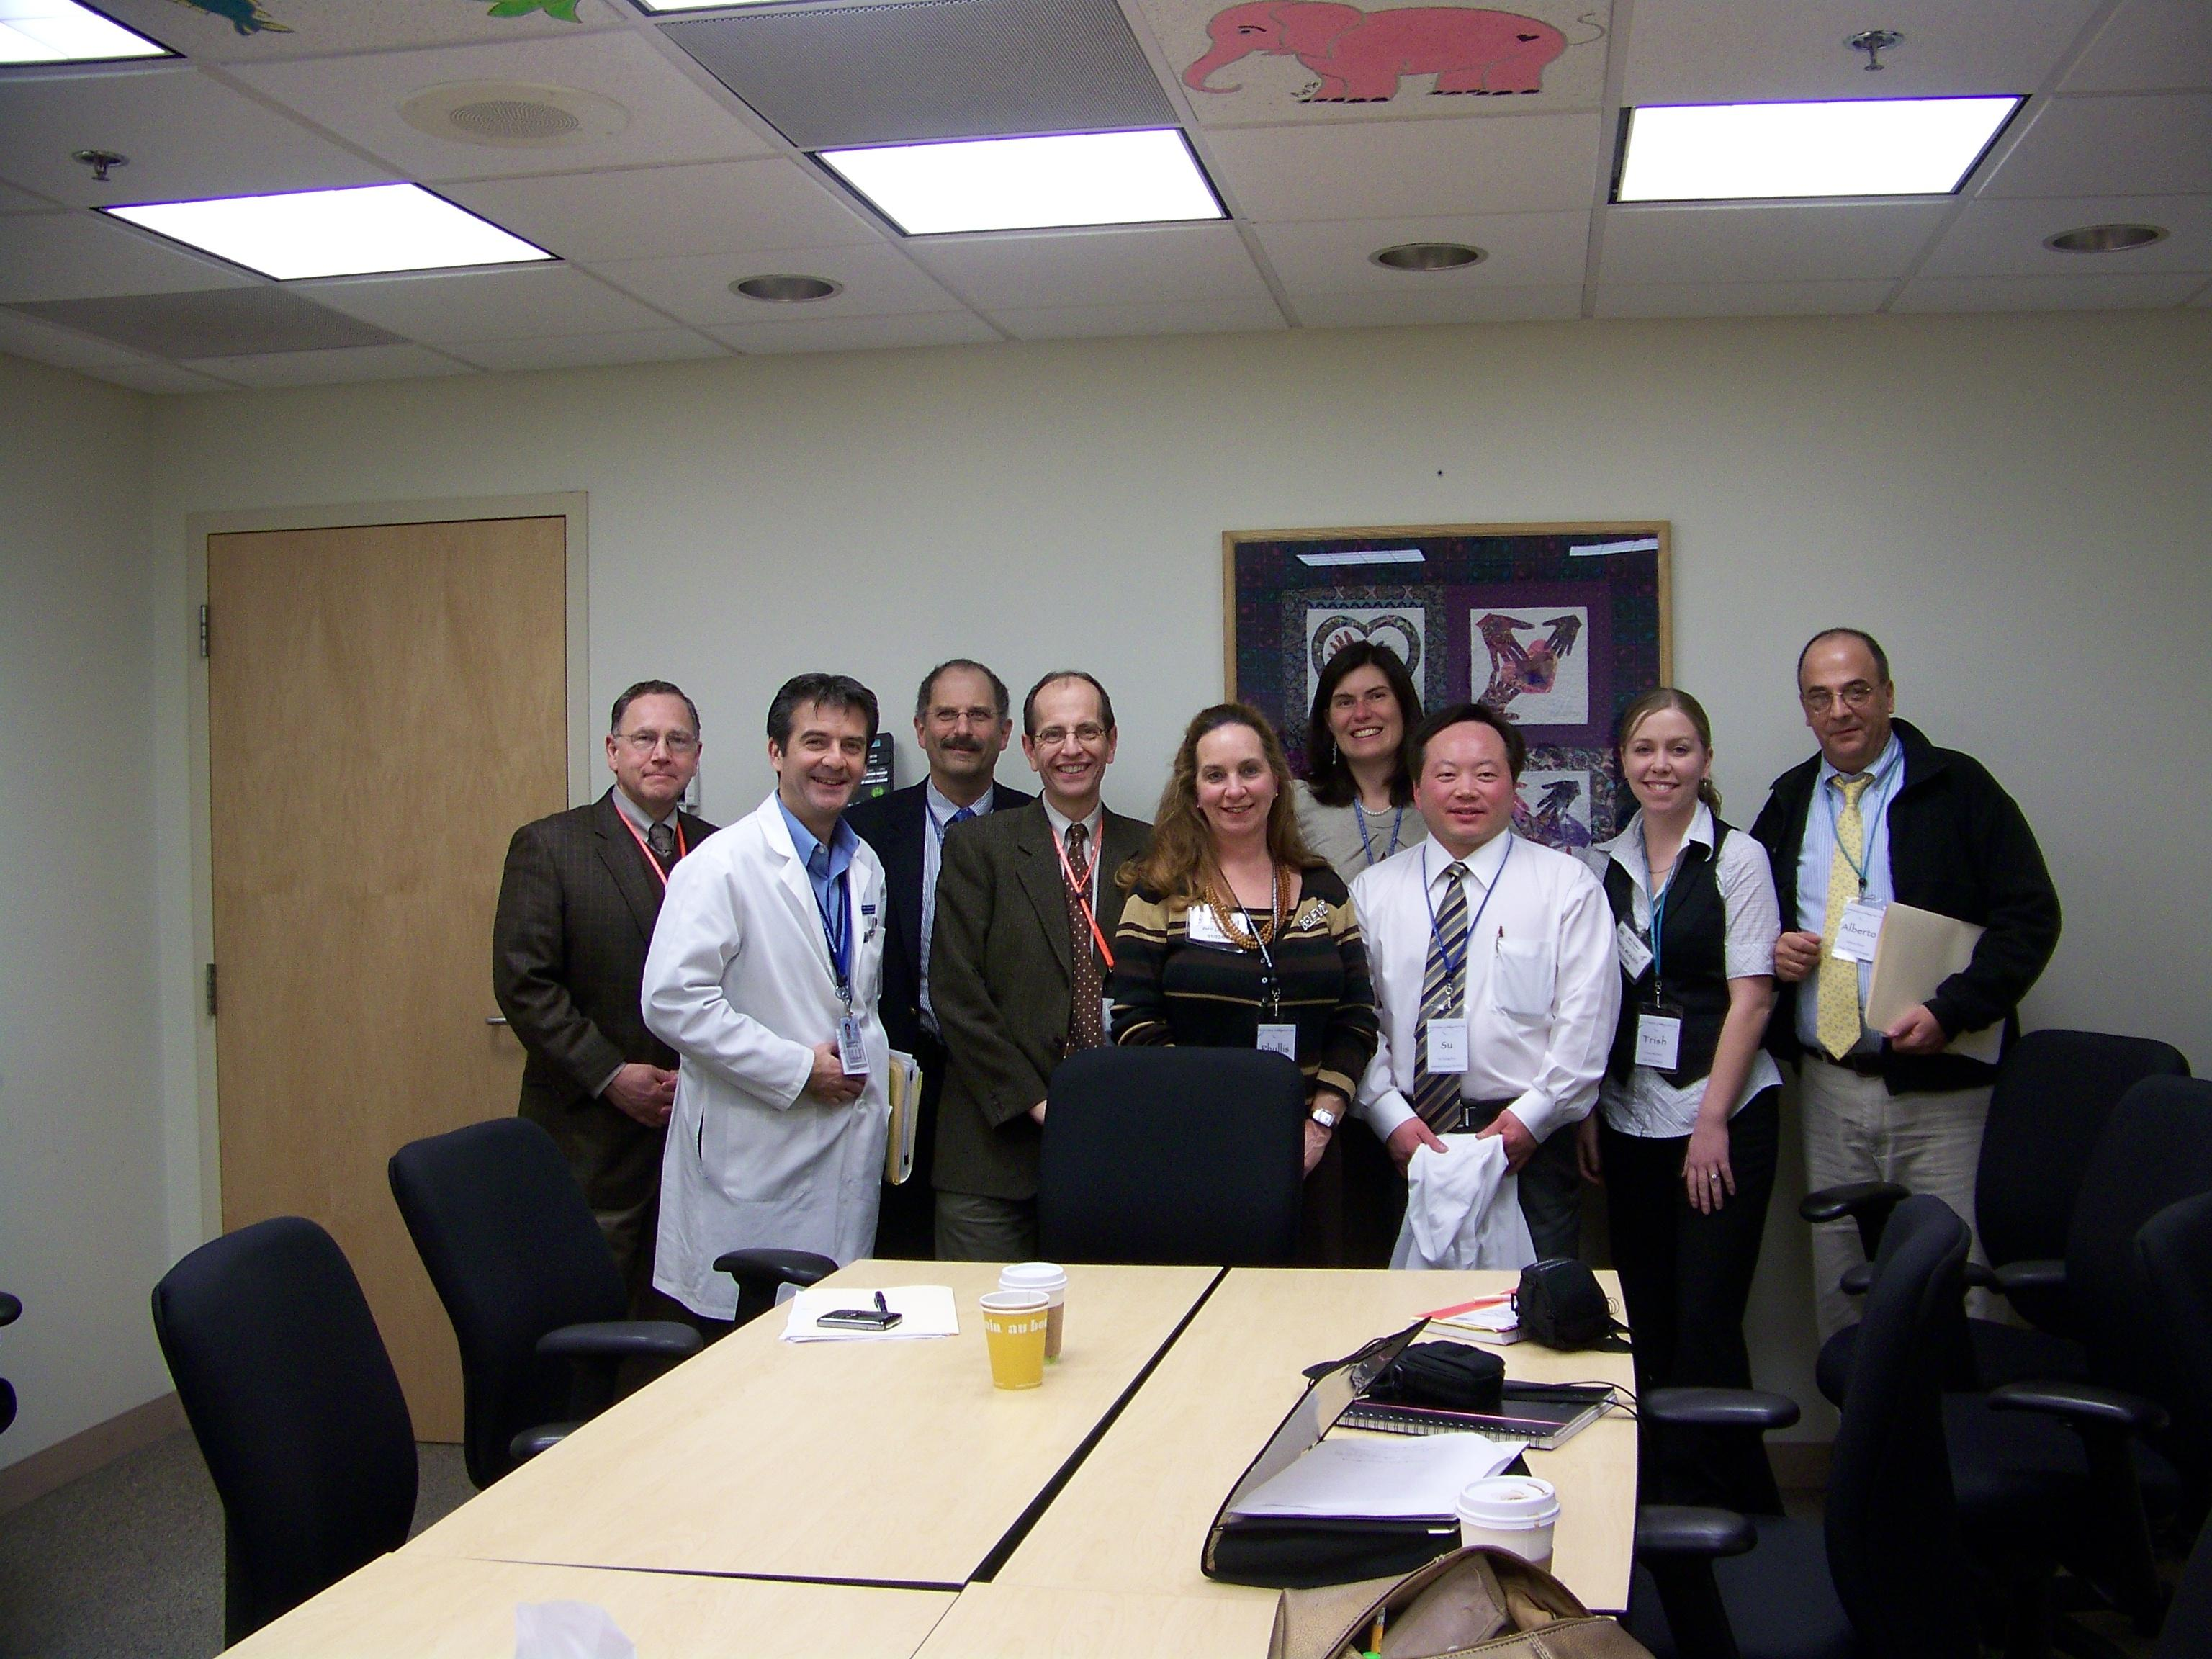 Phyllis and the Ped GIST Mds-NIH